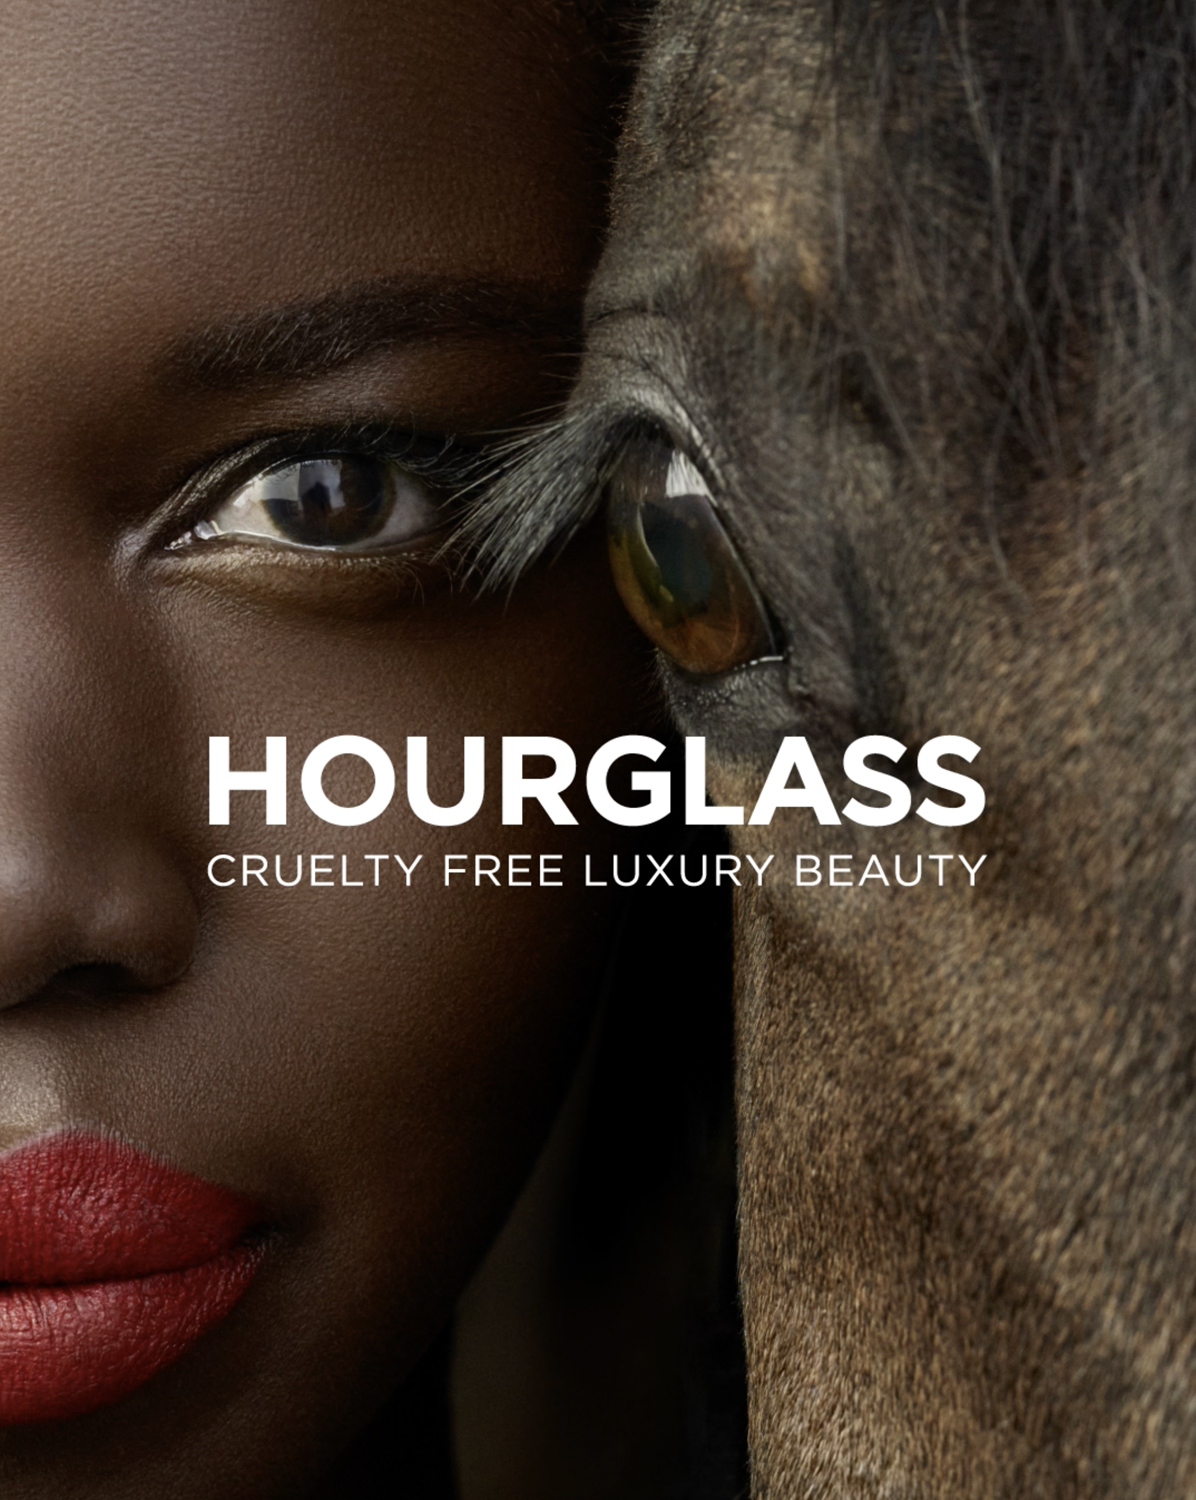 Top 10 Beauty Fashion Ad Campaigns 2019